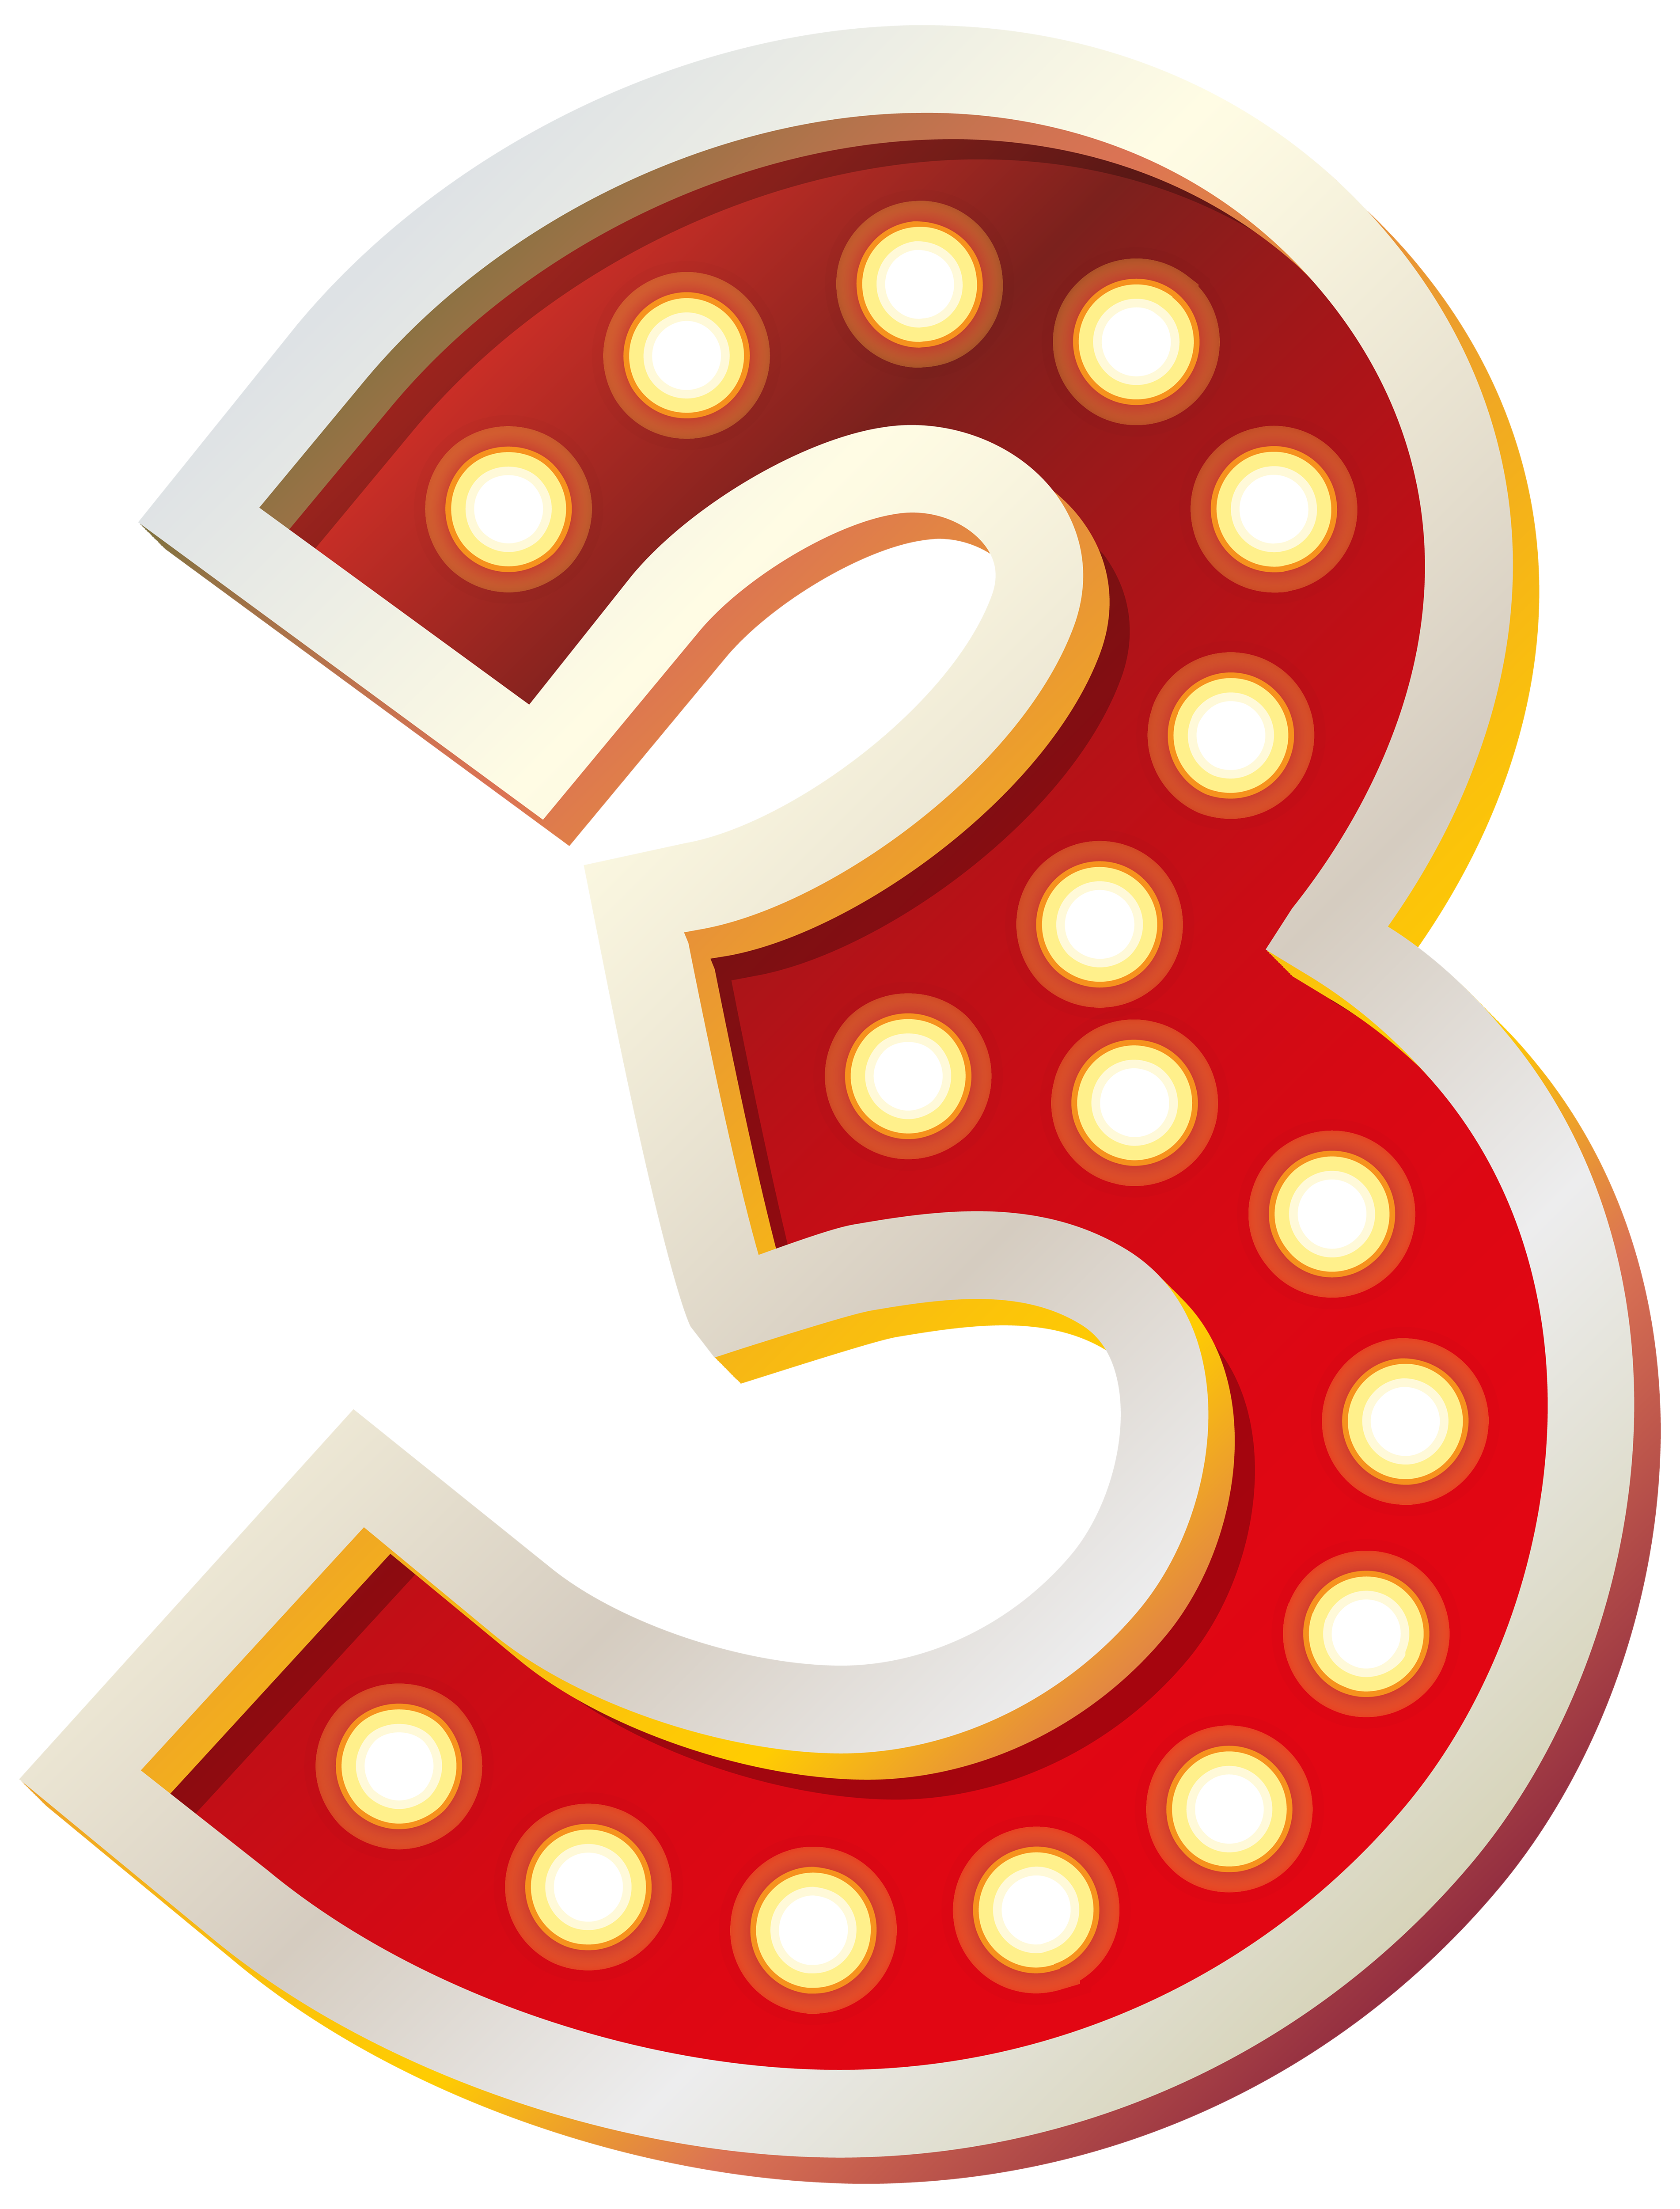 Red number with lights. Kiss clipart three